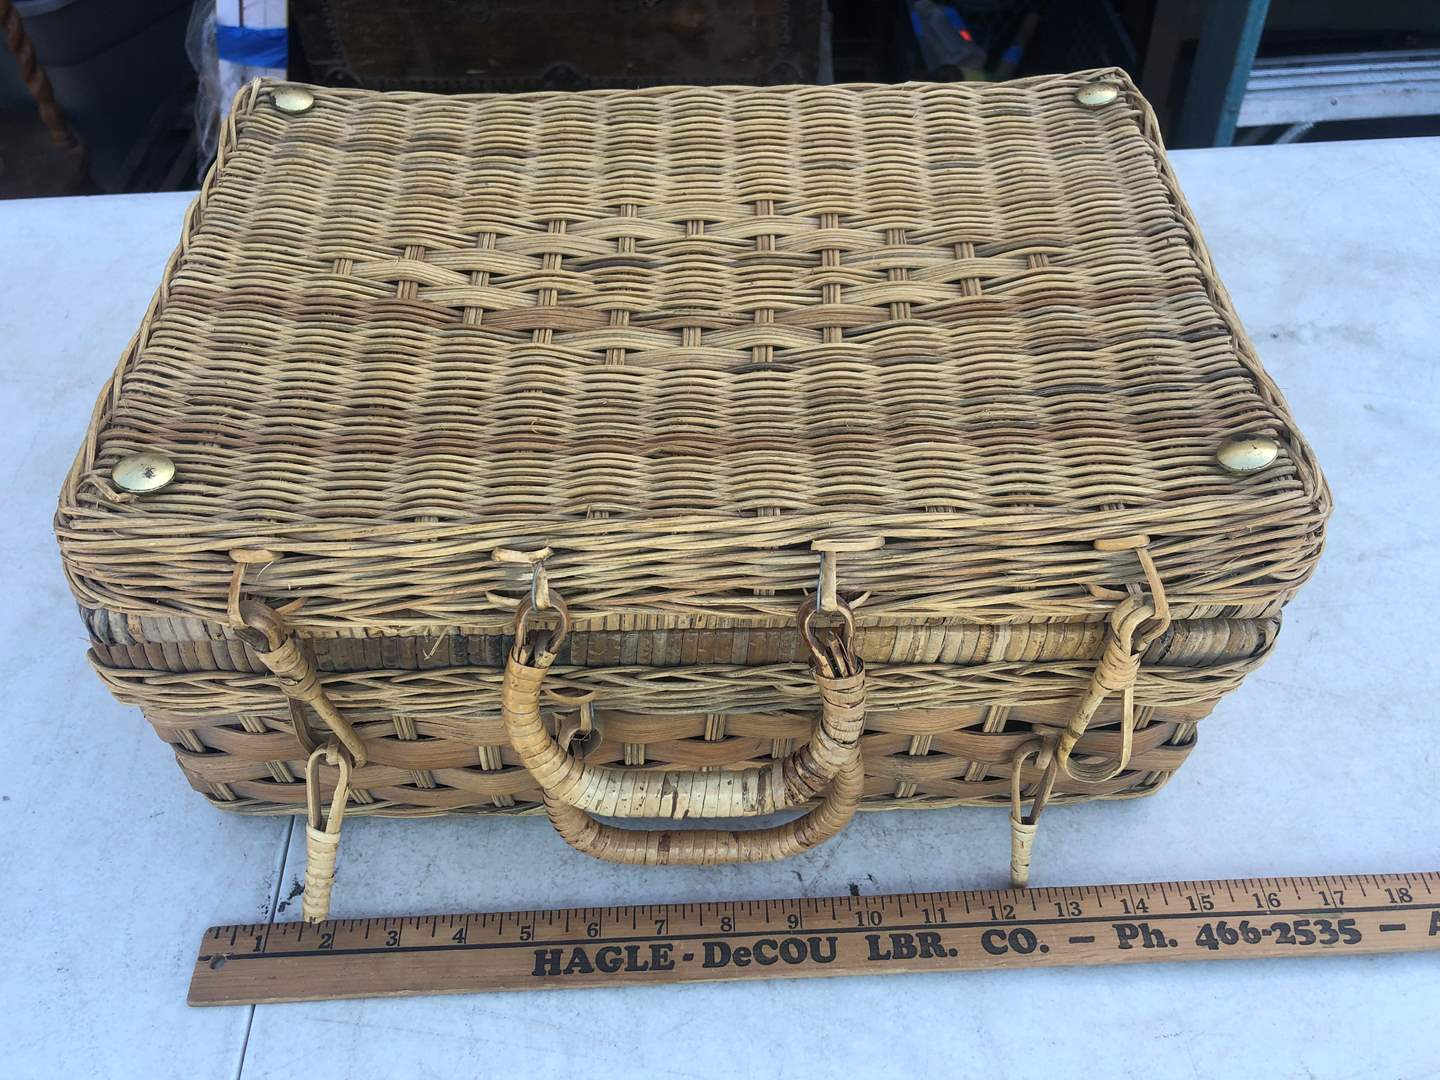 Lot # 48 - WICKER PICNIC BASKET (main image)